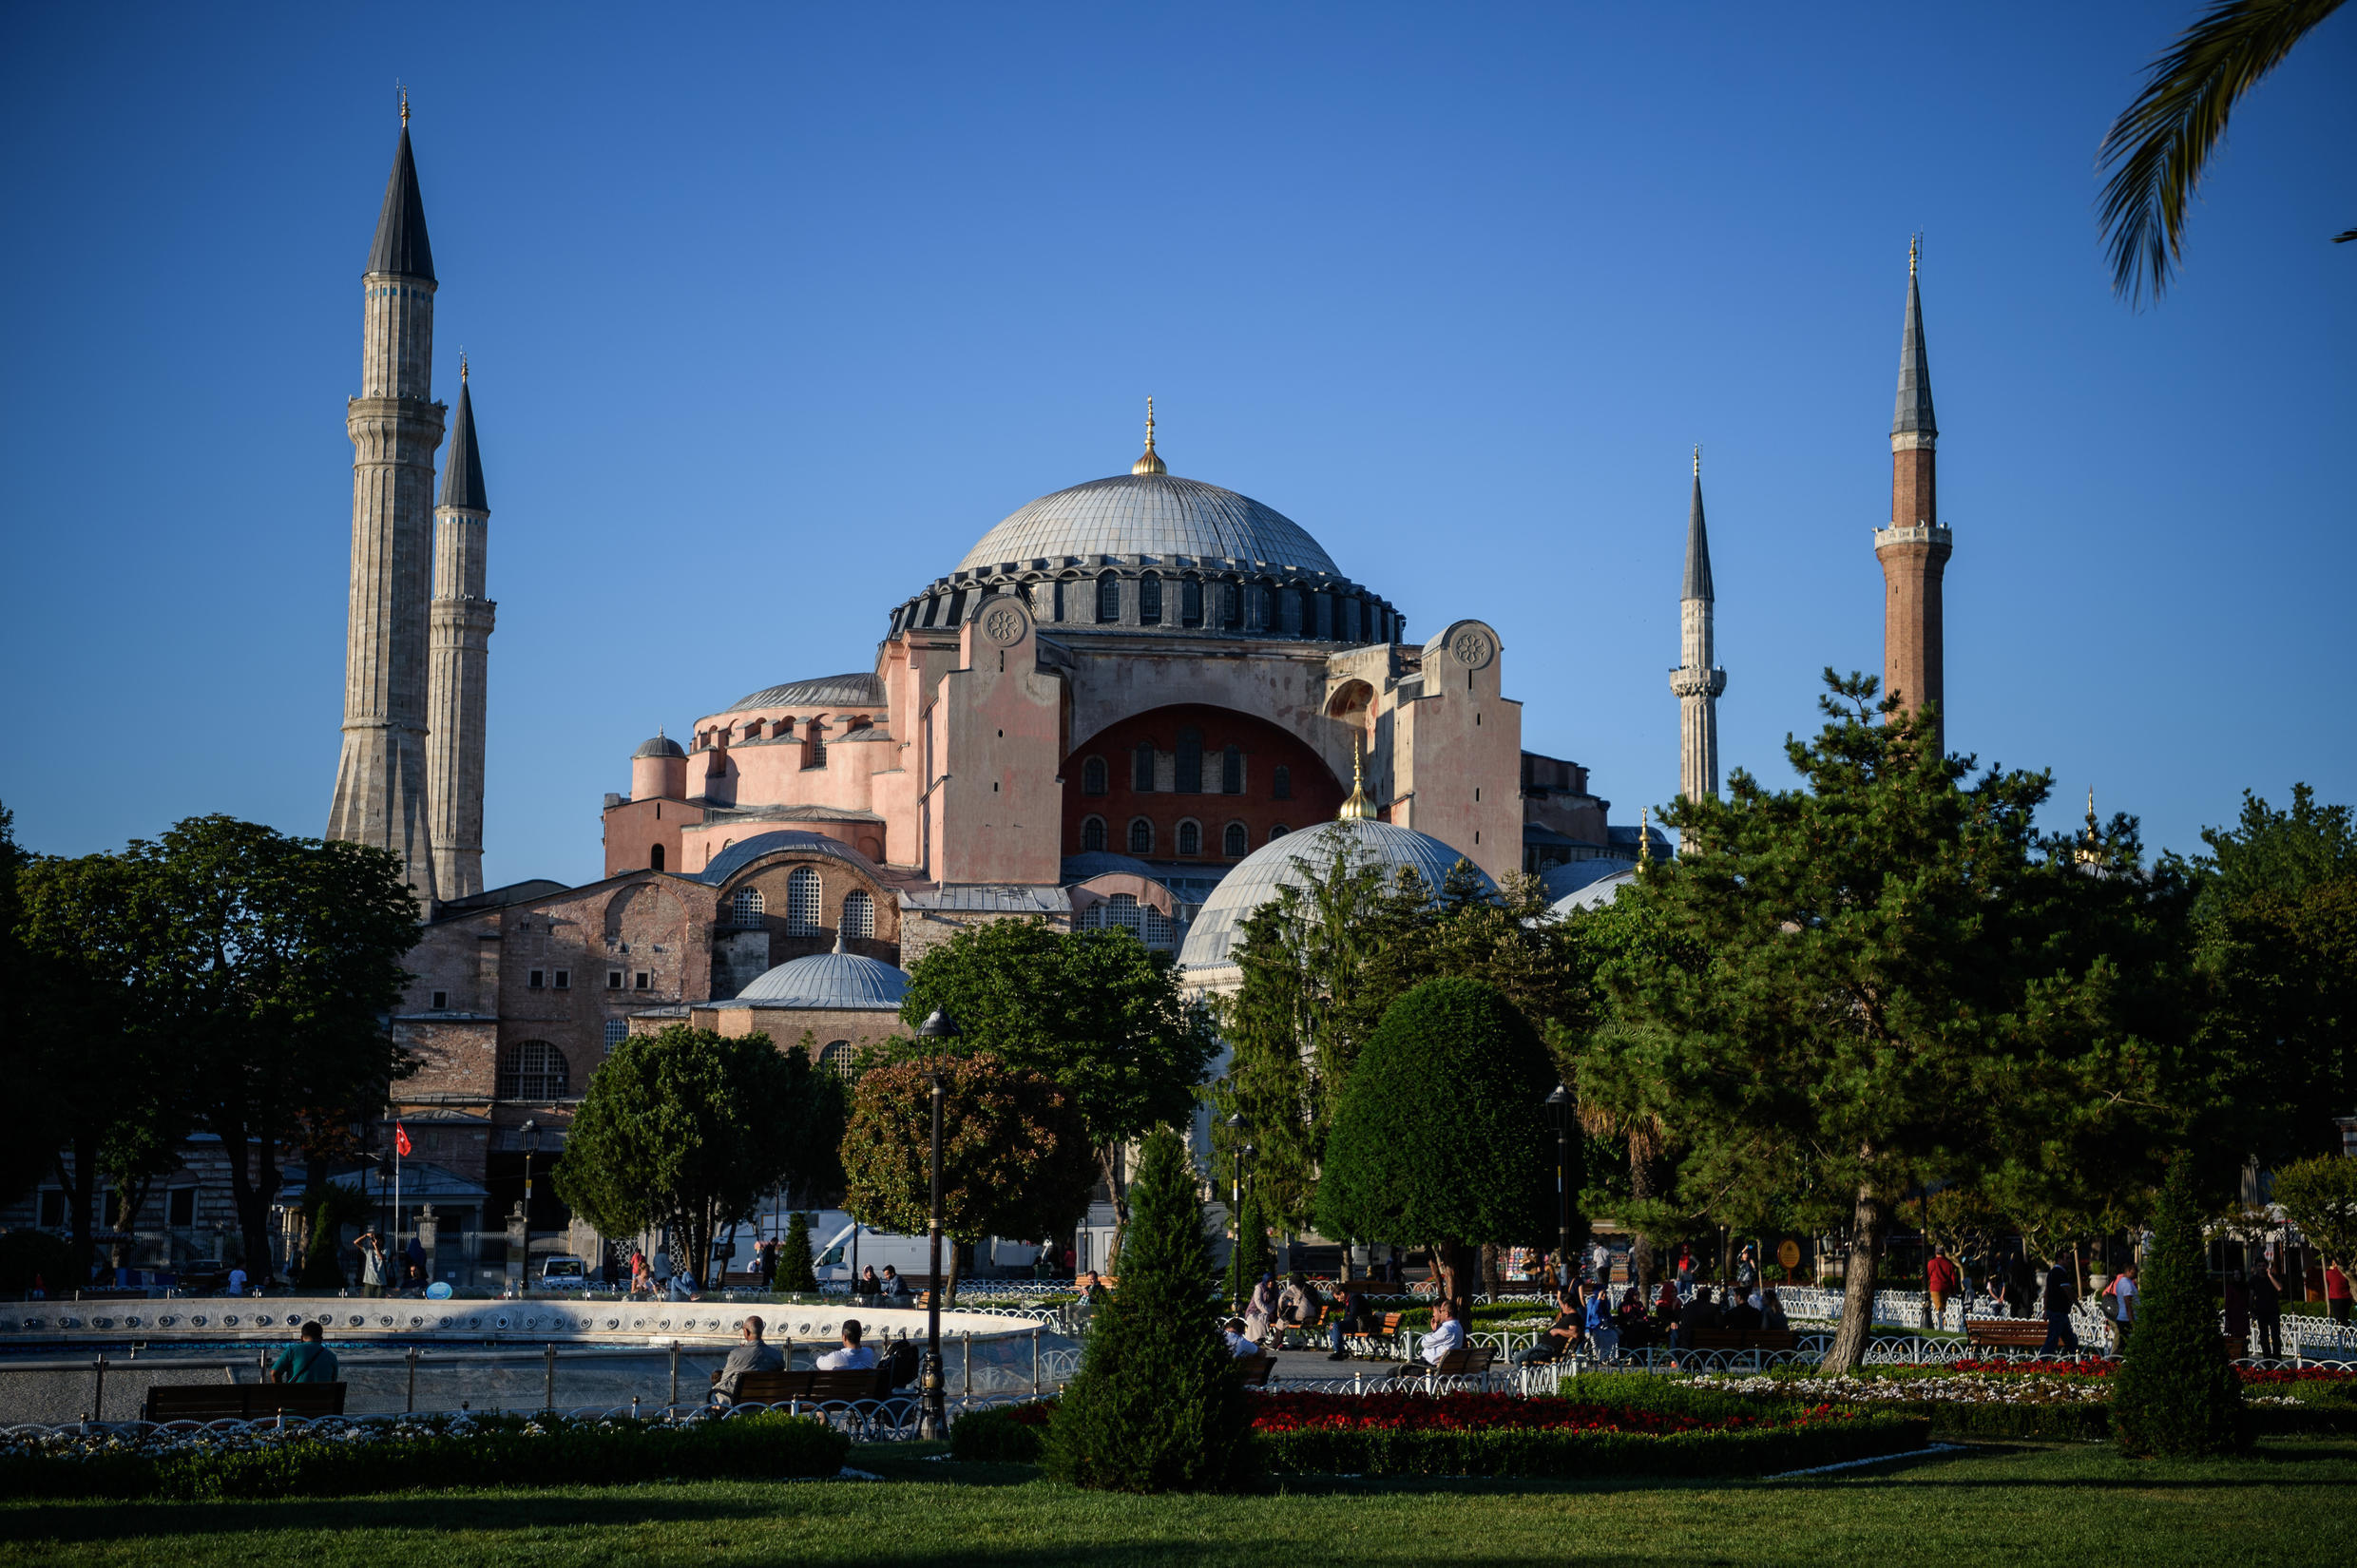 Hagia Sophia, the sixth-century Istanbul building that was formerly a cathedral and a mosque, has been a museum since 1935, open to believers of all faiths.